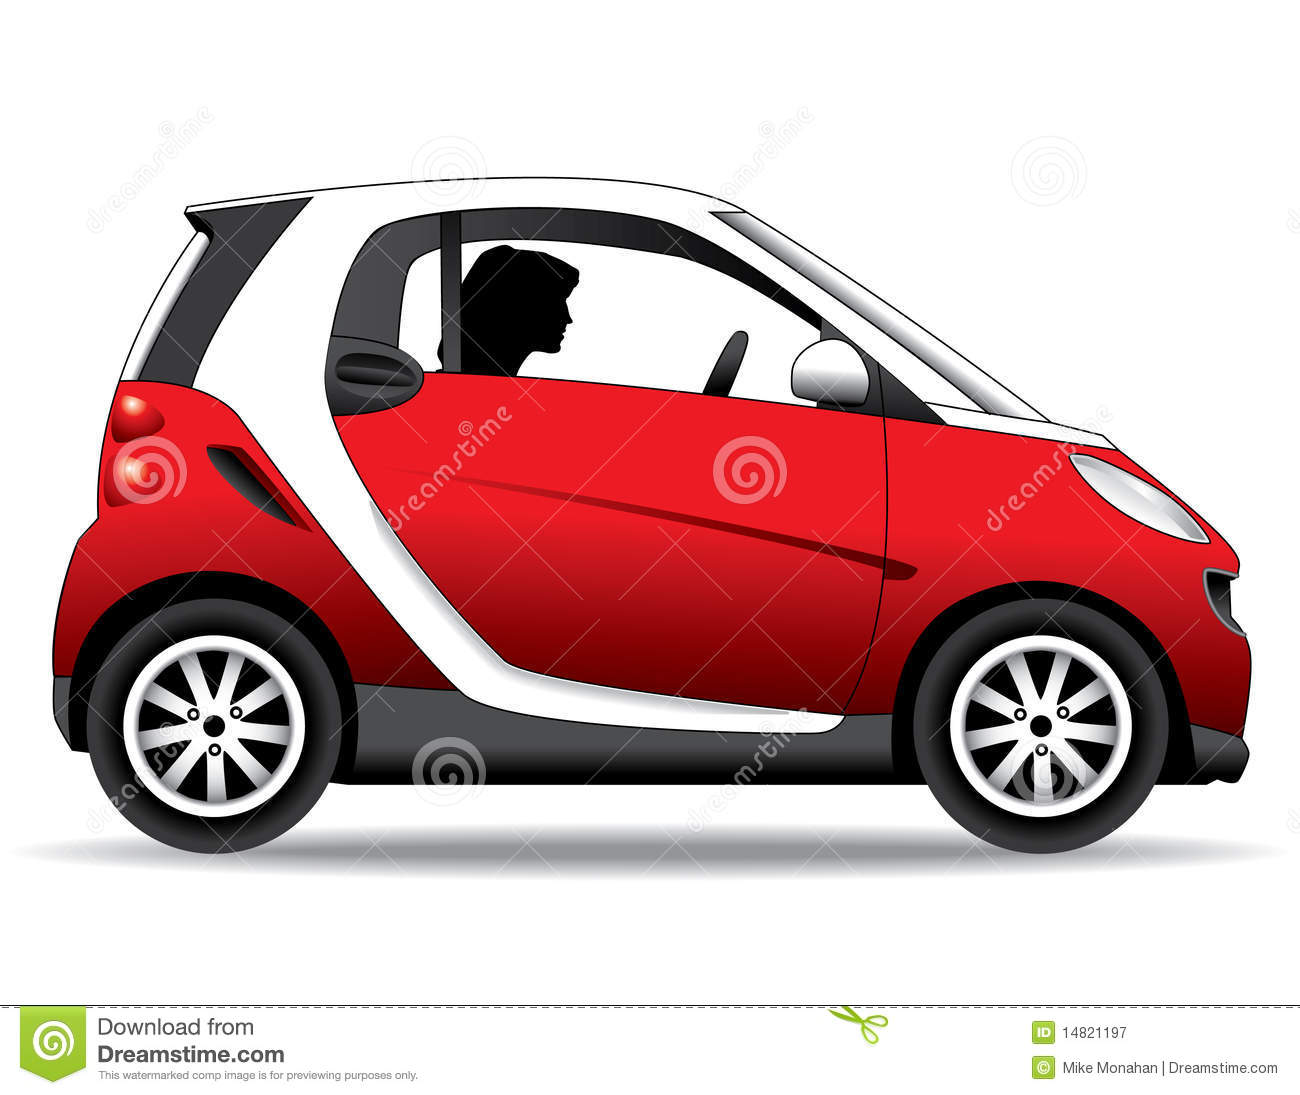 Person Driving Small Red Car Royalty Free Stock Photography Image 14821197